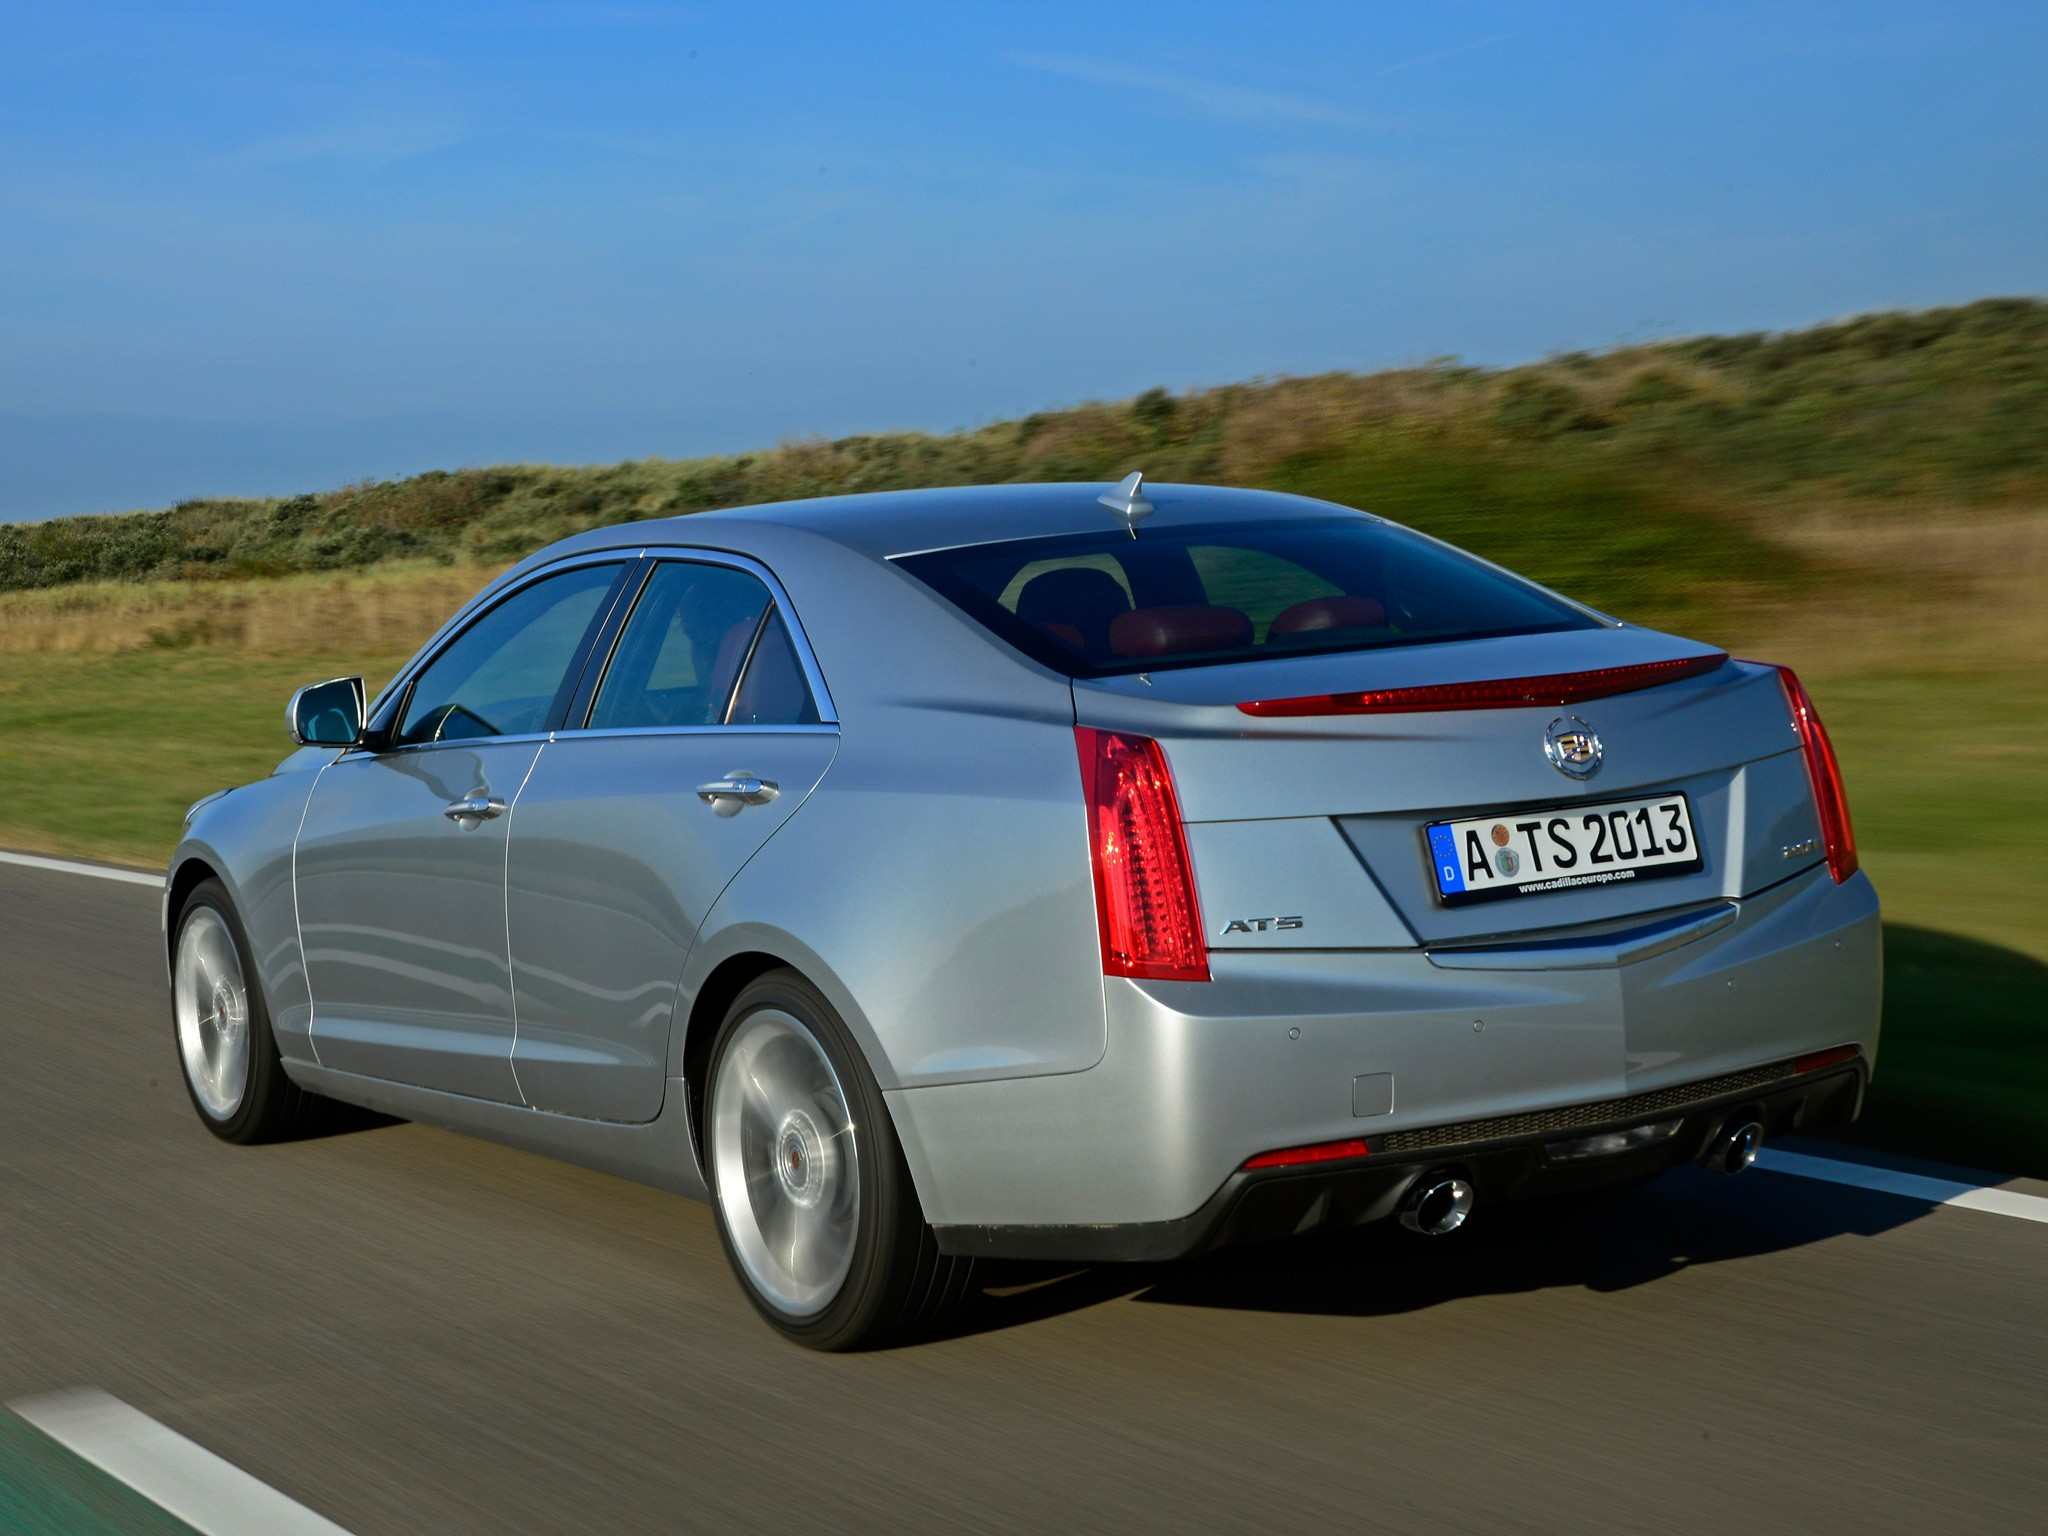 Cadillac ATS, Buick Encore Recalled Over Safety Belt Issue